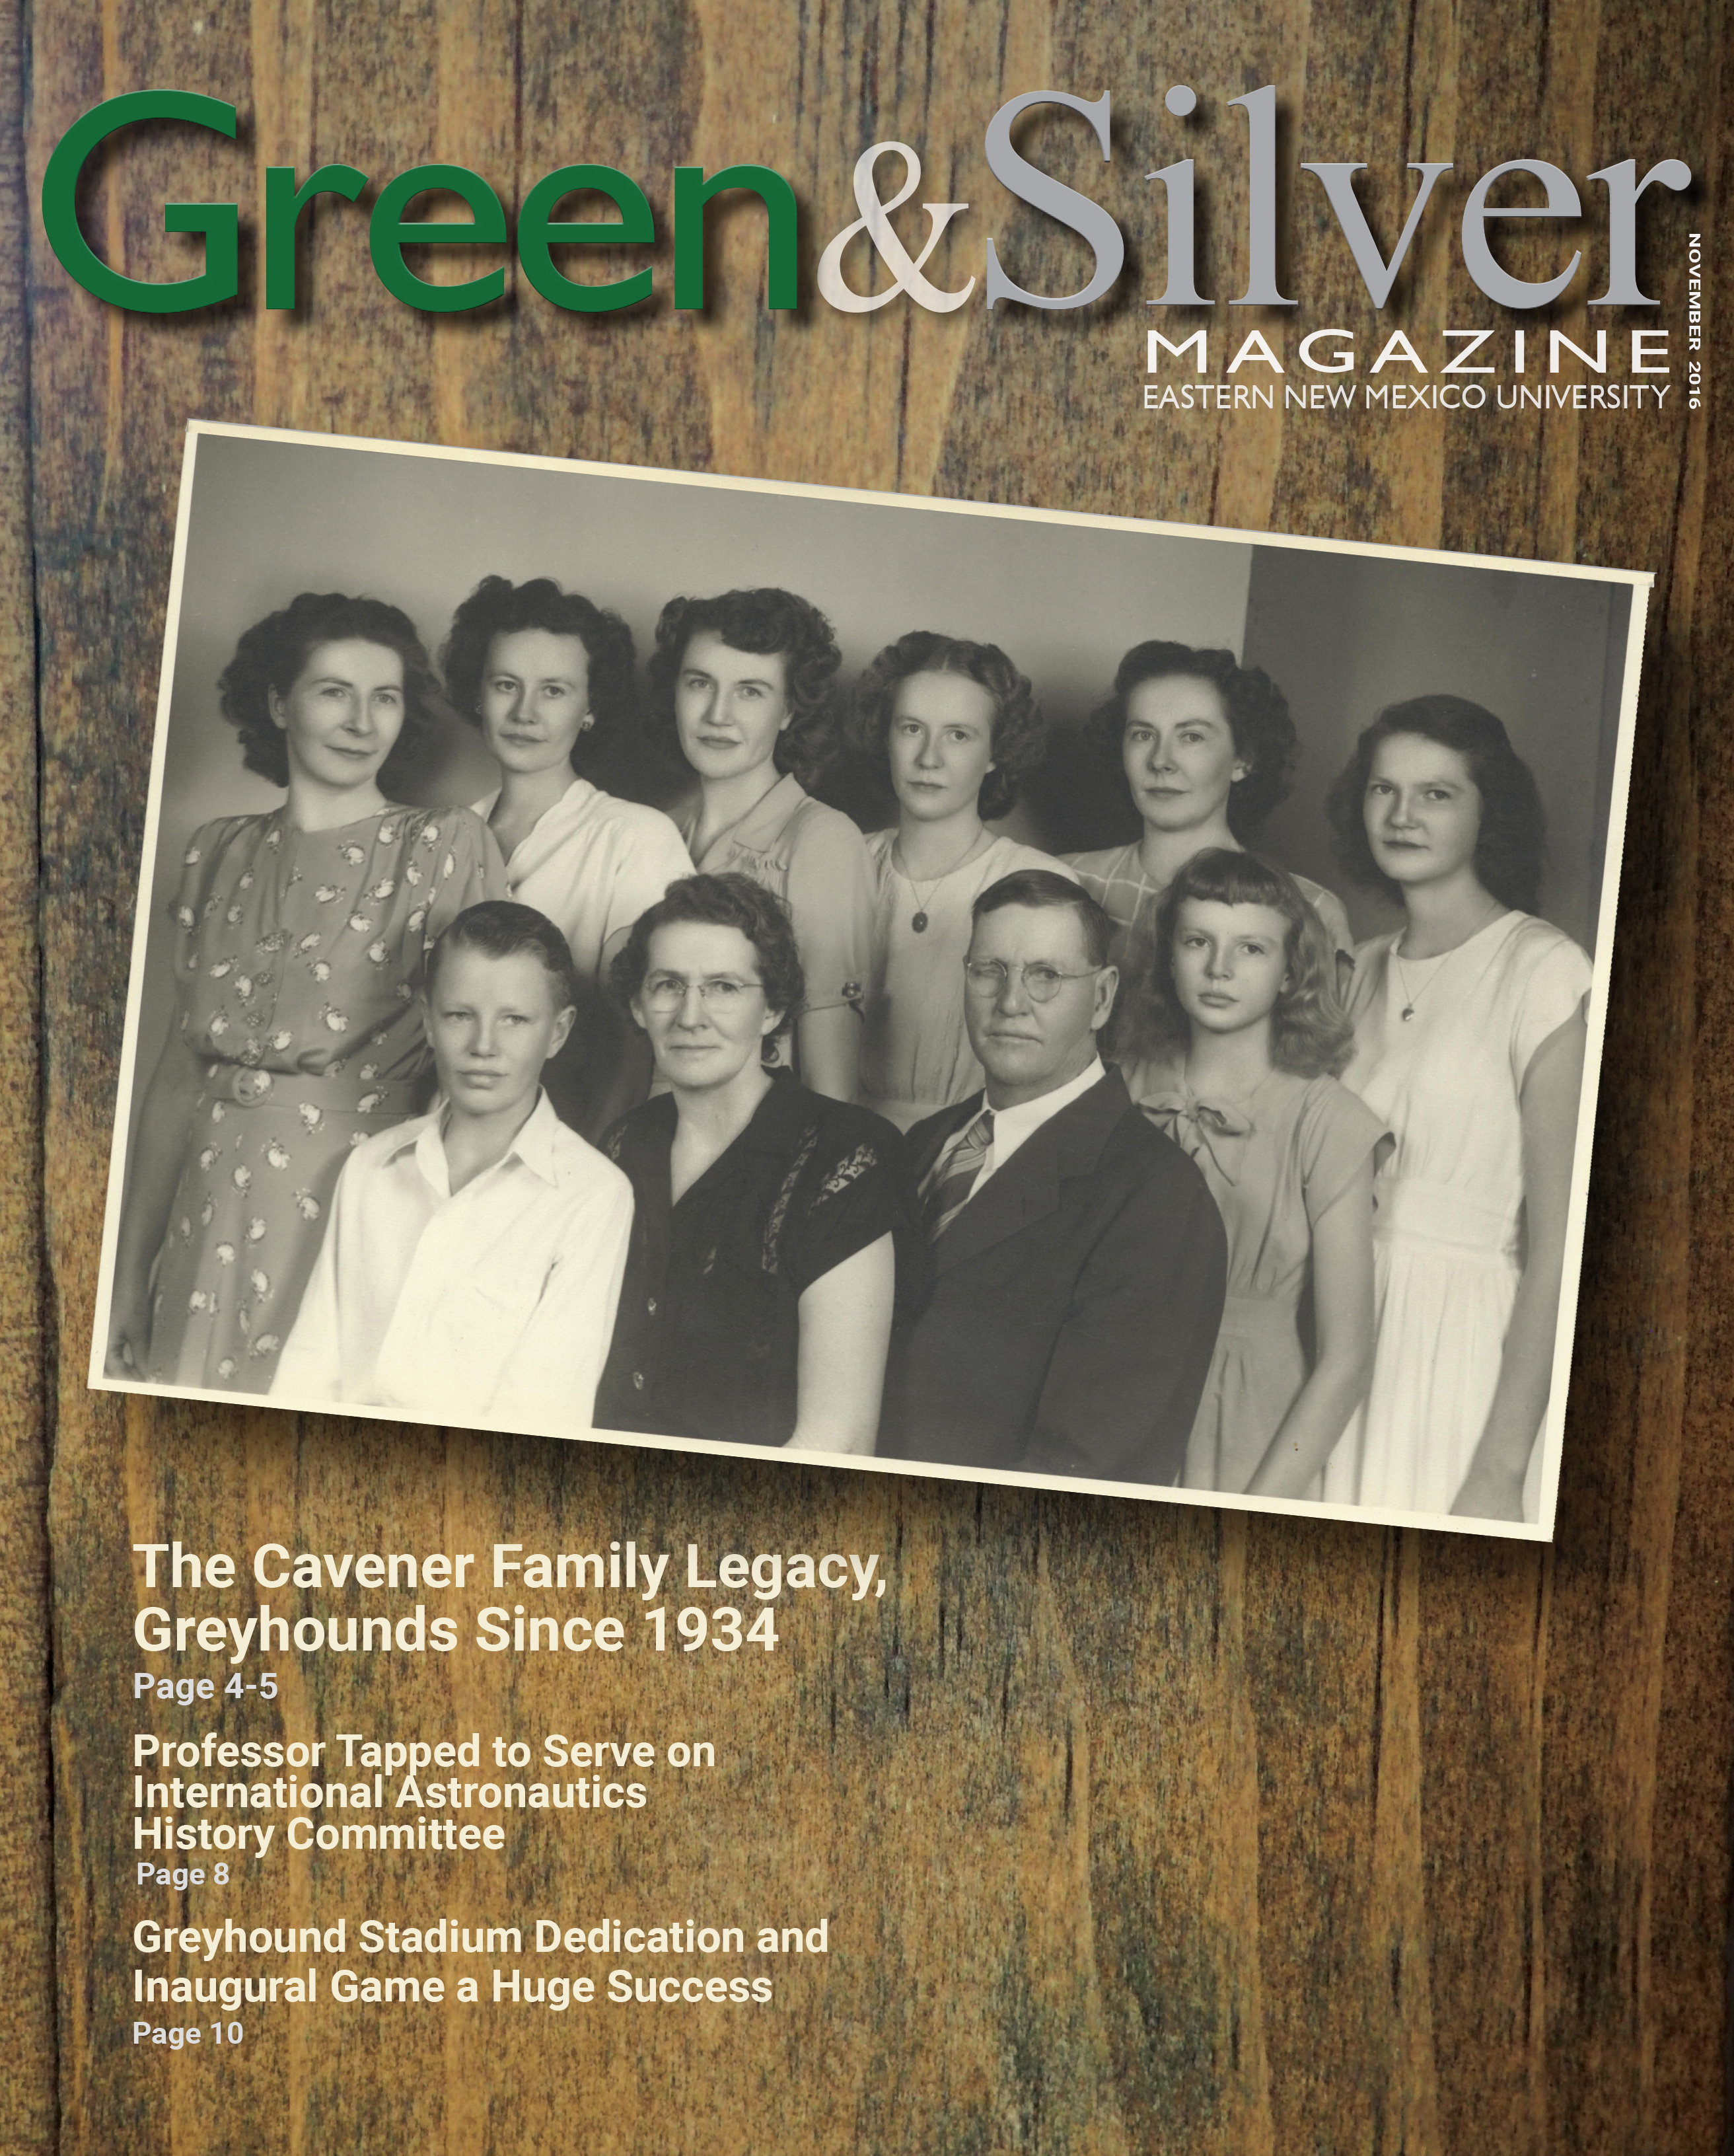 Green & Silver Magazine November 2016 cover